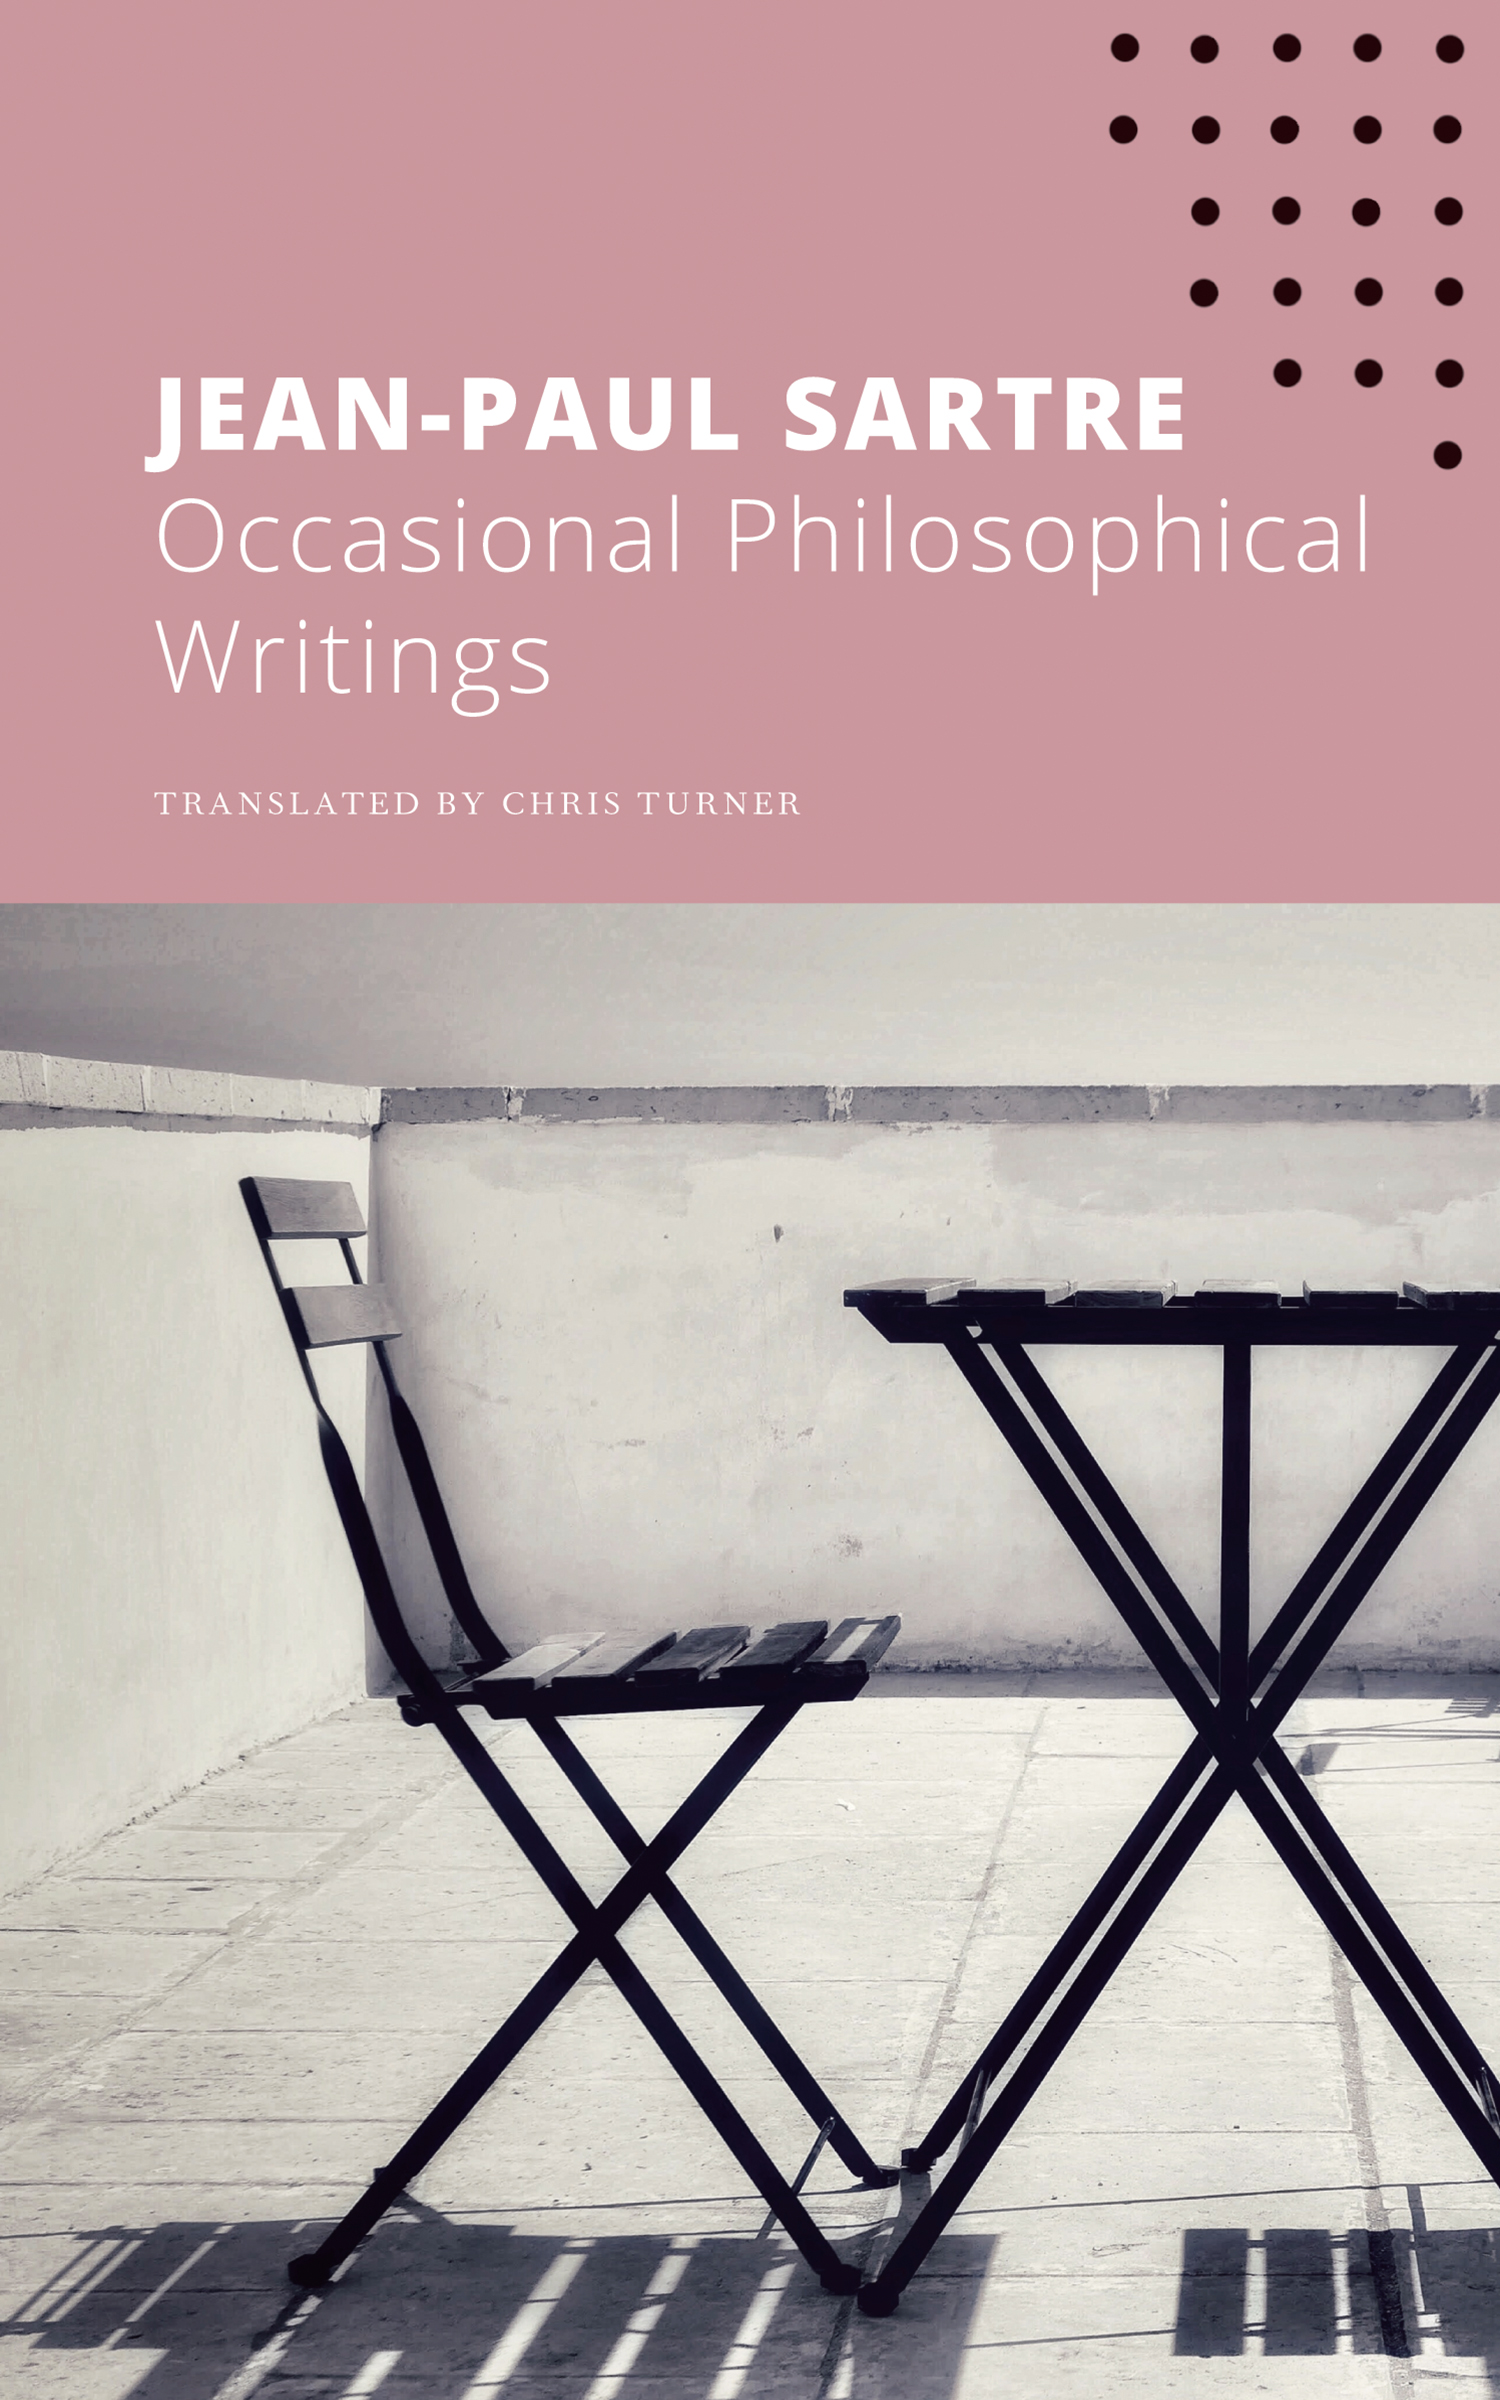 Occasional Writings on Philosophy by Jean-Paul Sartre   Seagull Books